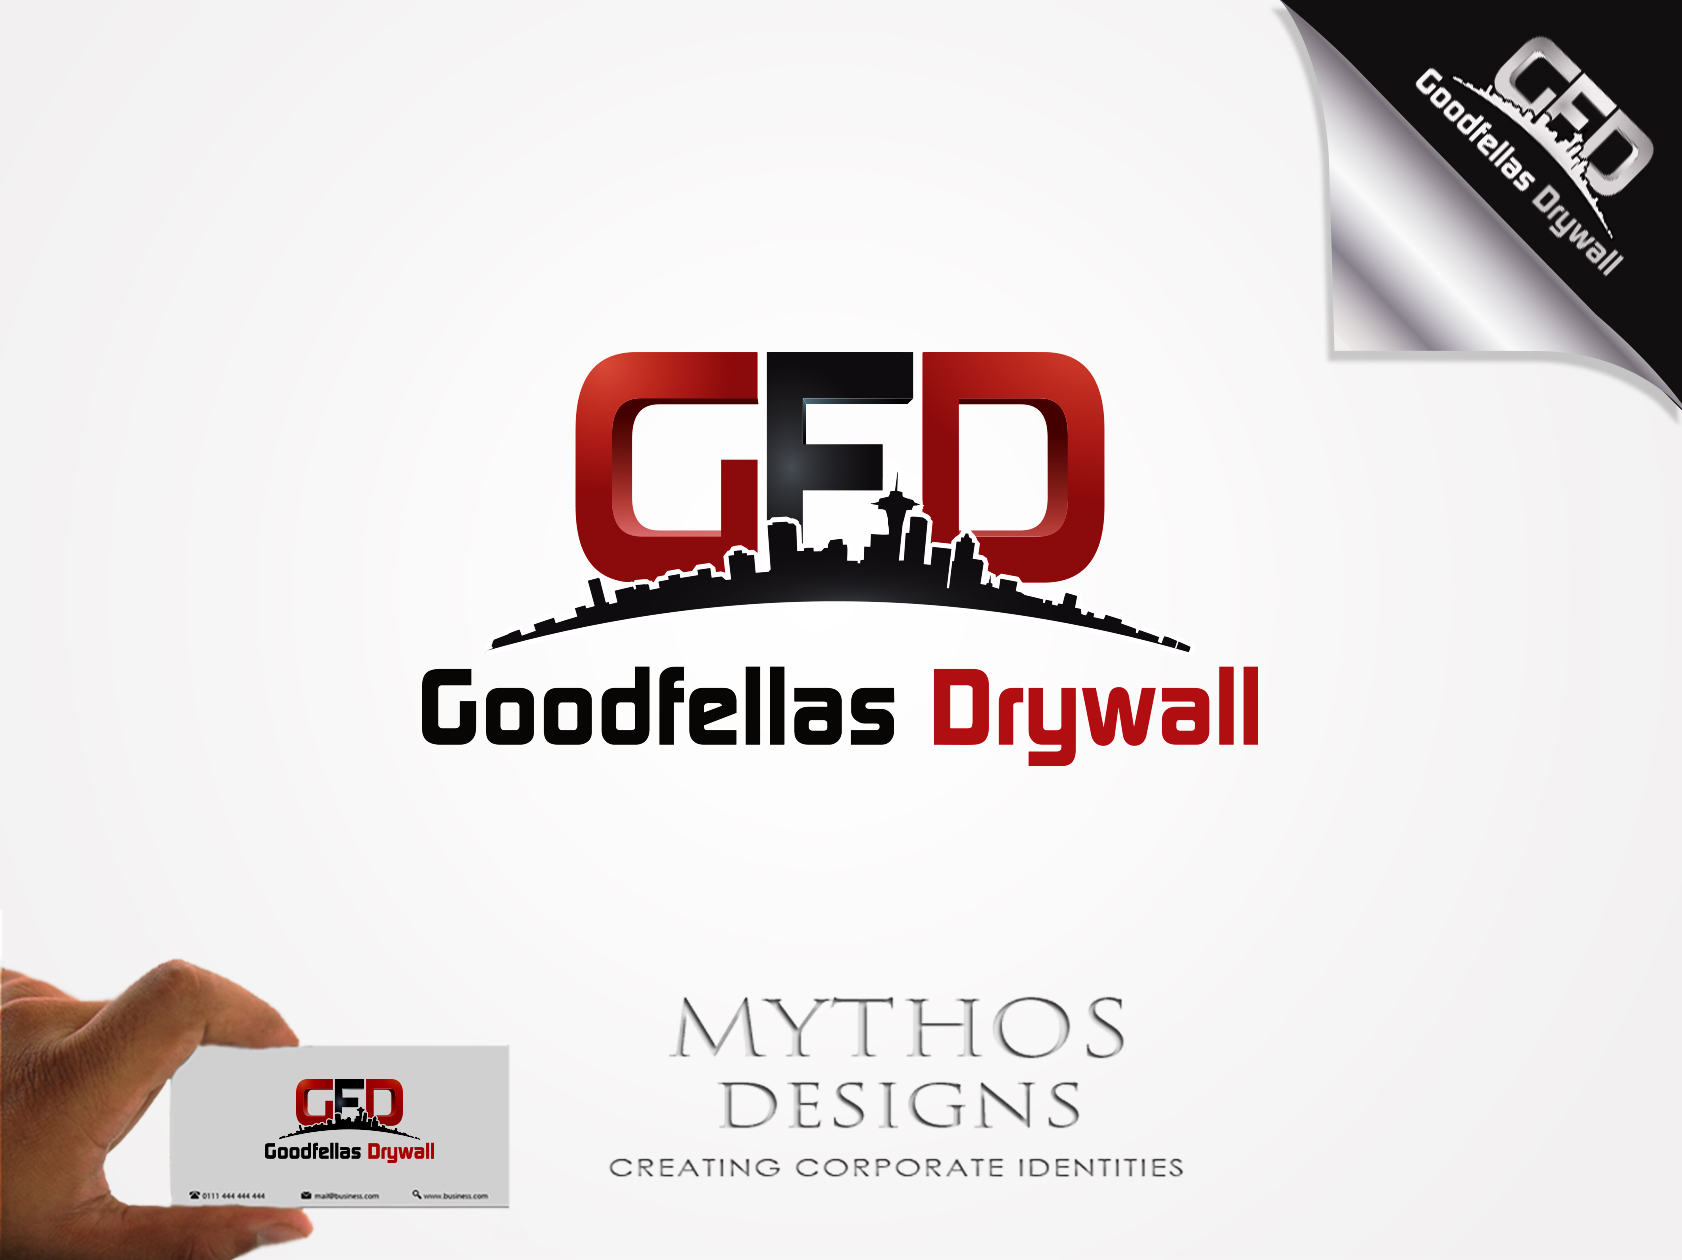 Logo Design by Mythos Designs - Entry No. 187 in the Logo Design Contest Creative Logo Design for Goodfellas Drywall.